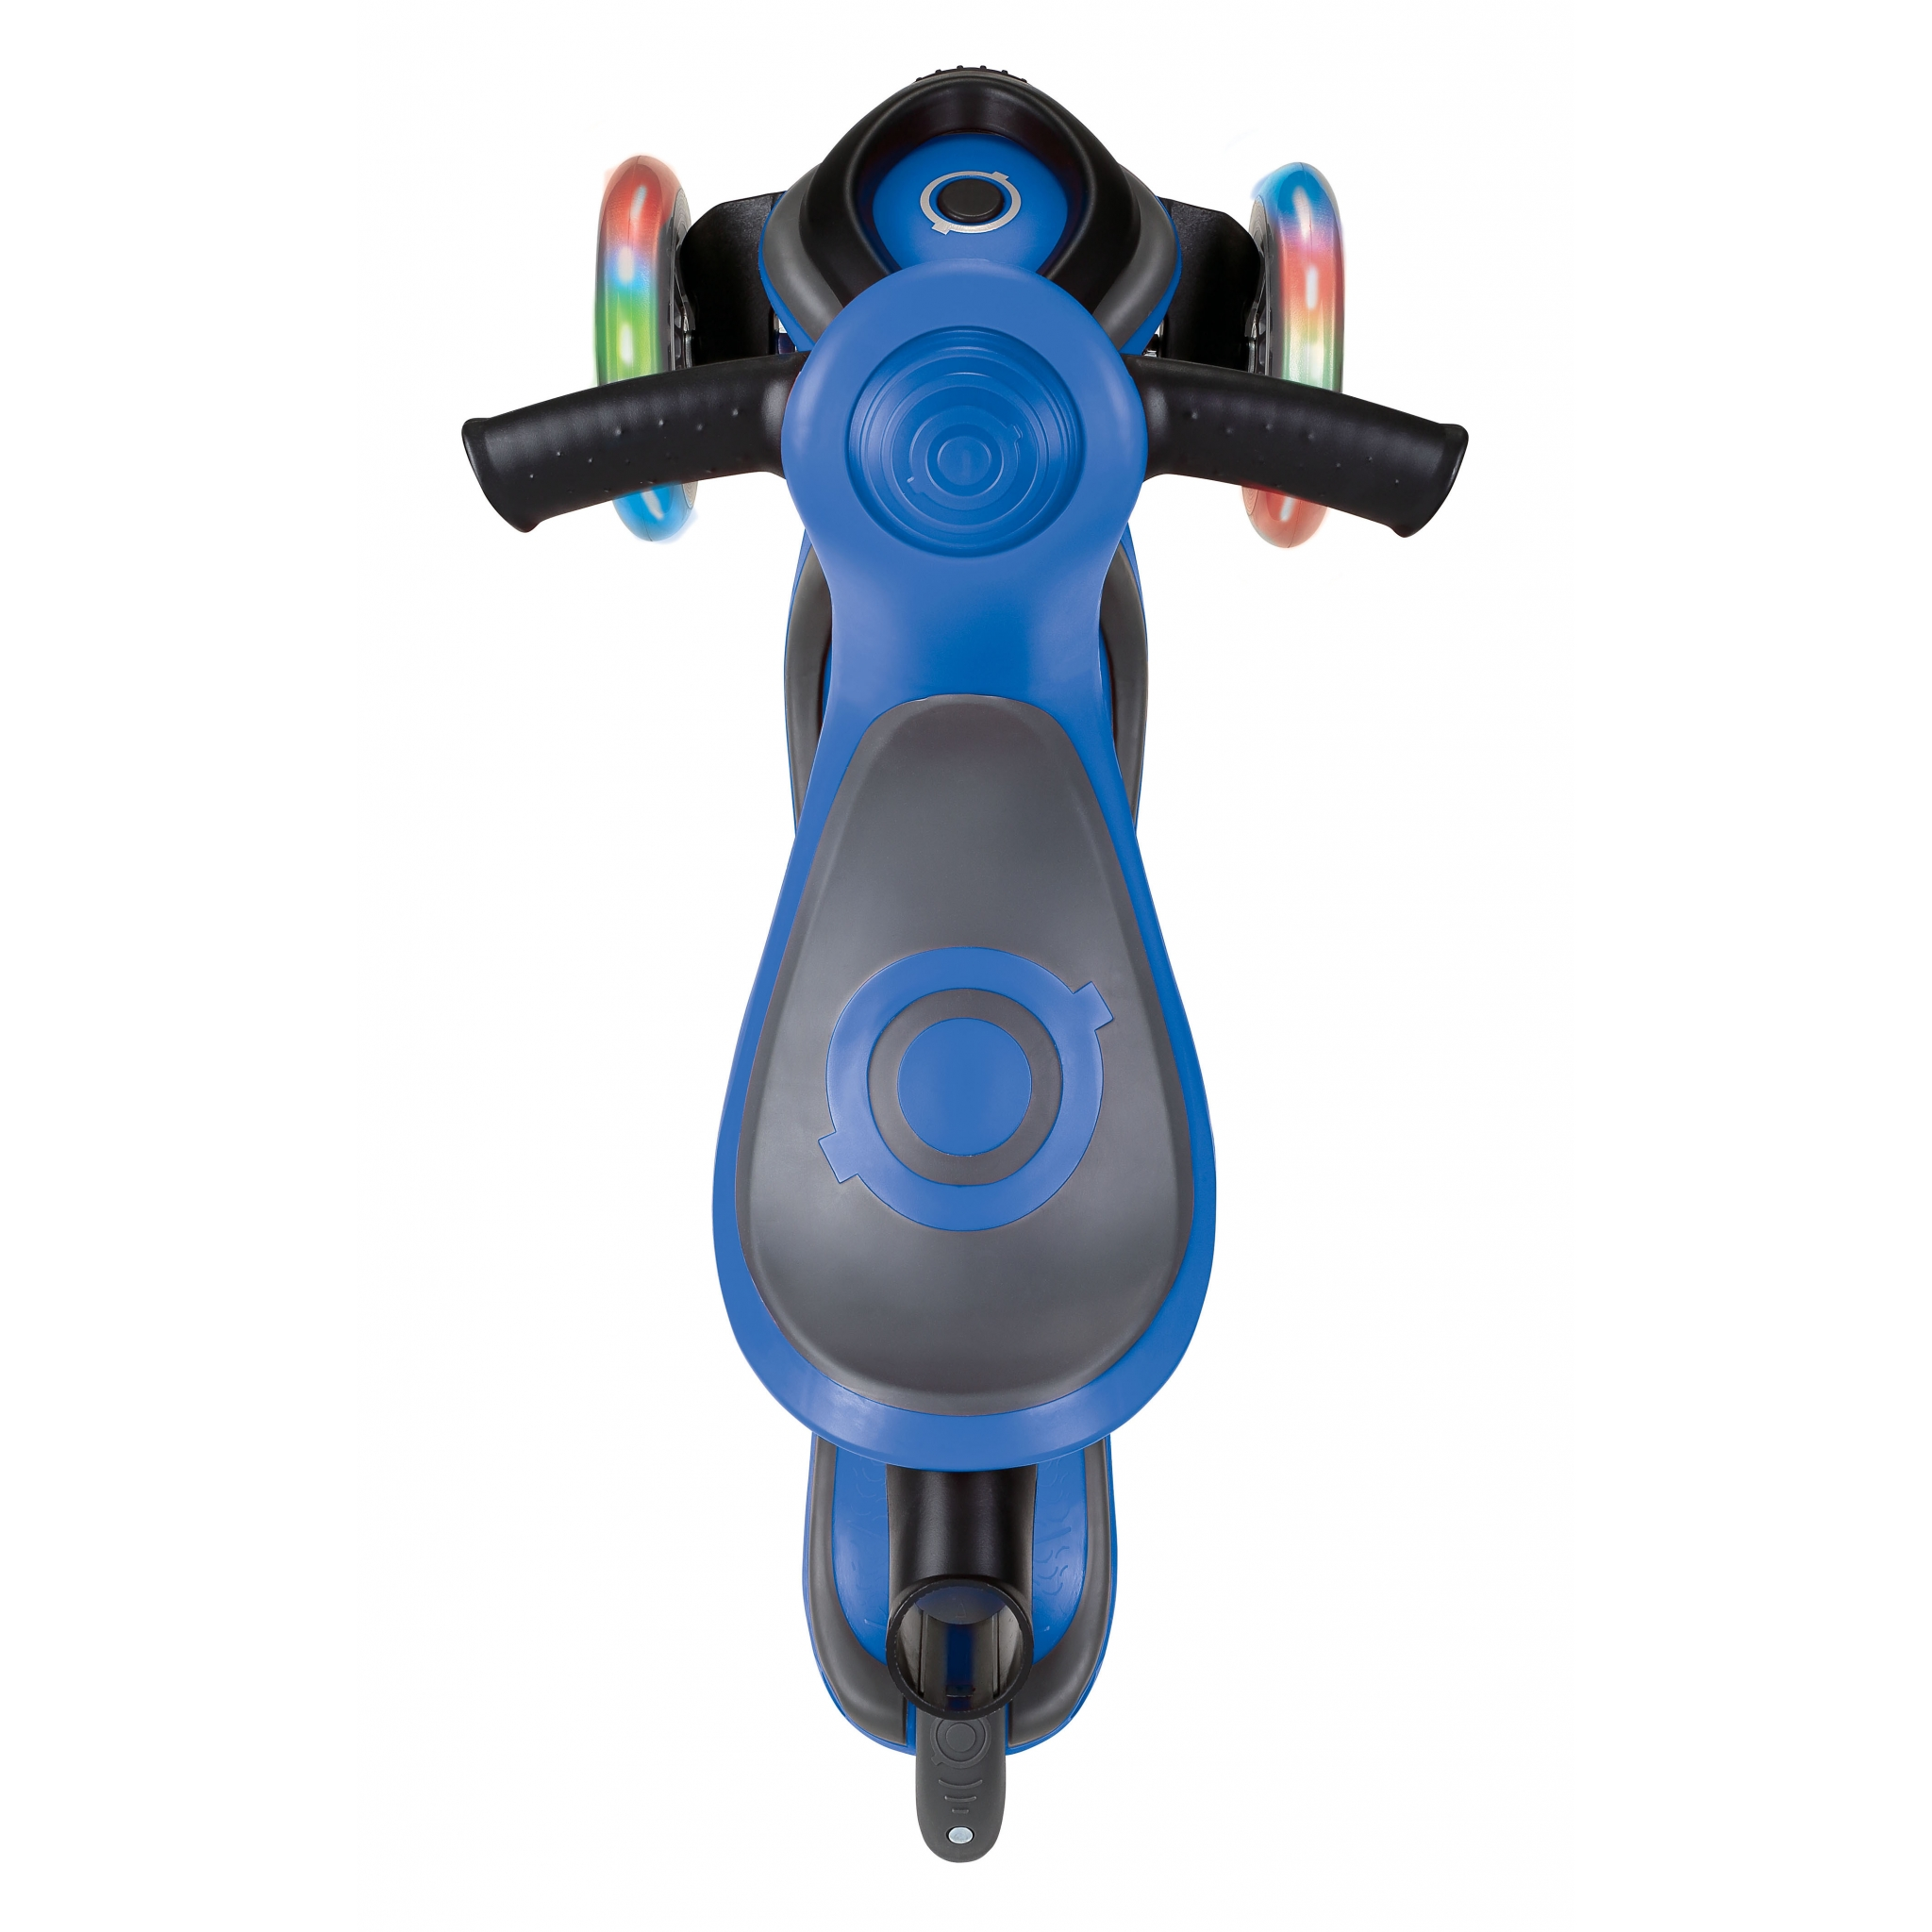 GO-UP-COMFORT-LIGHTS-scooter-with-seat-extra-wide-seat-for-maximum-comfort-navy-blue 3